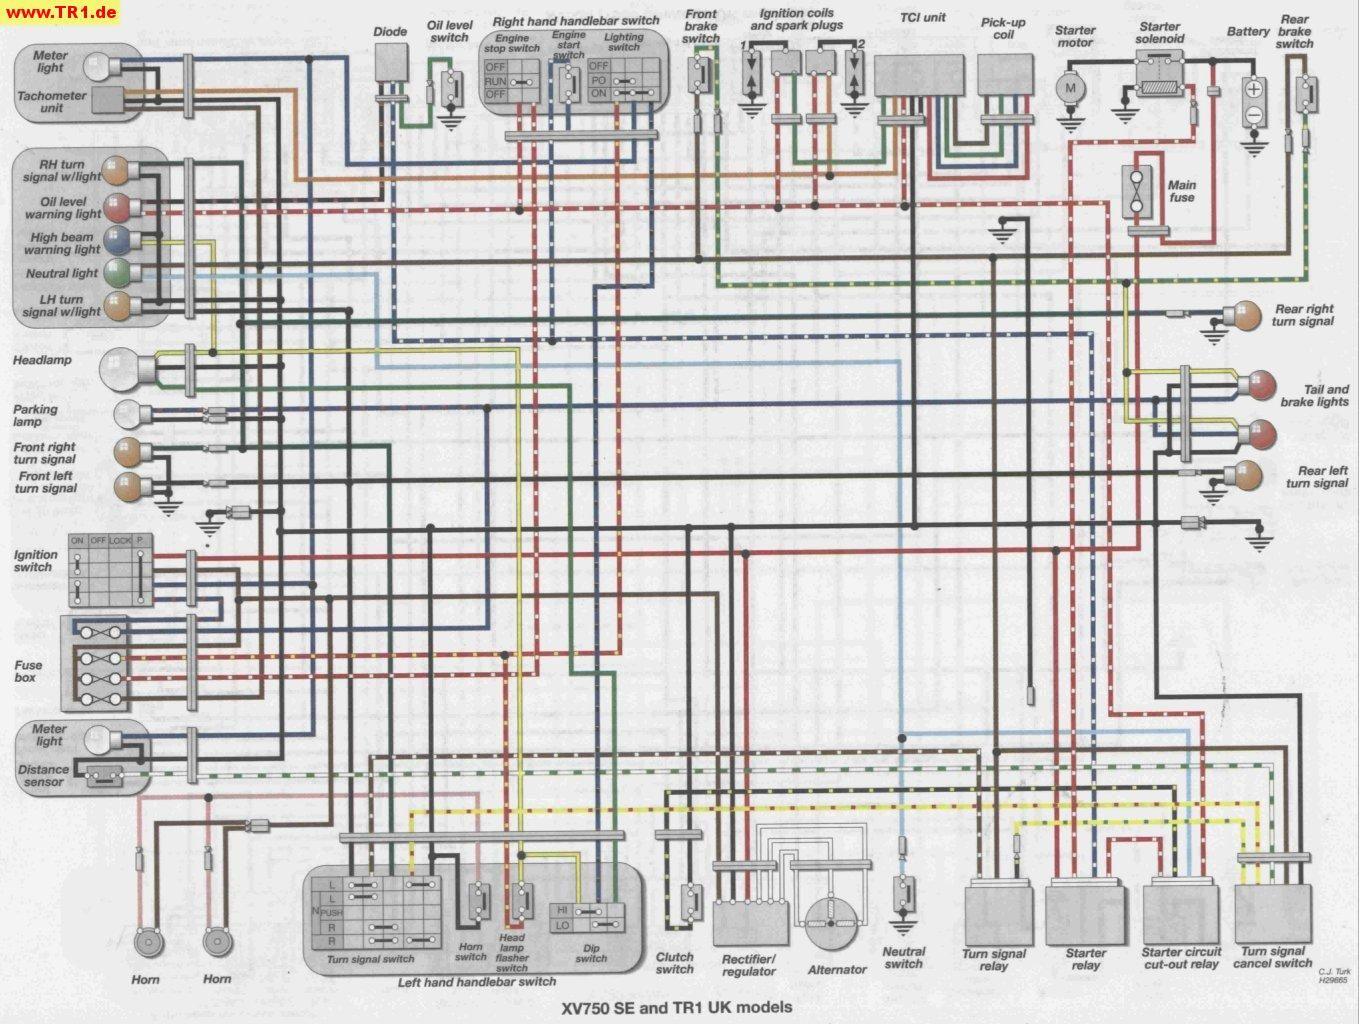 Tr1 Xv1000 Xv920 Wiring Diagrams Manfred S Tr1 Page All About Yamaha Tr1 Xv1000 Xv920 Yamaha Virago Electrical Diagram Diagram